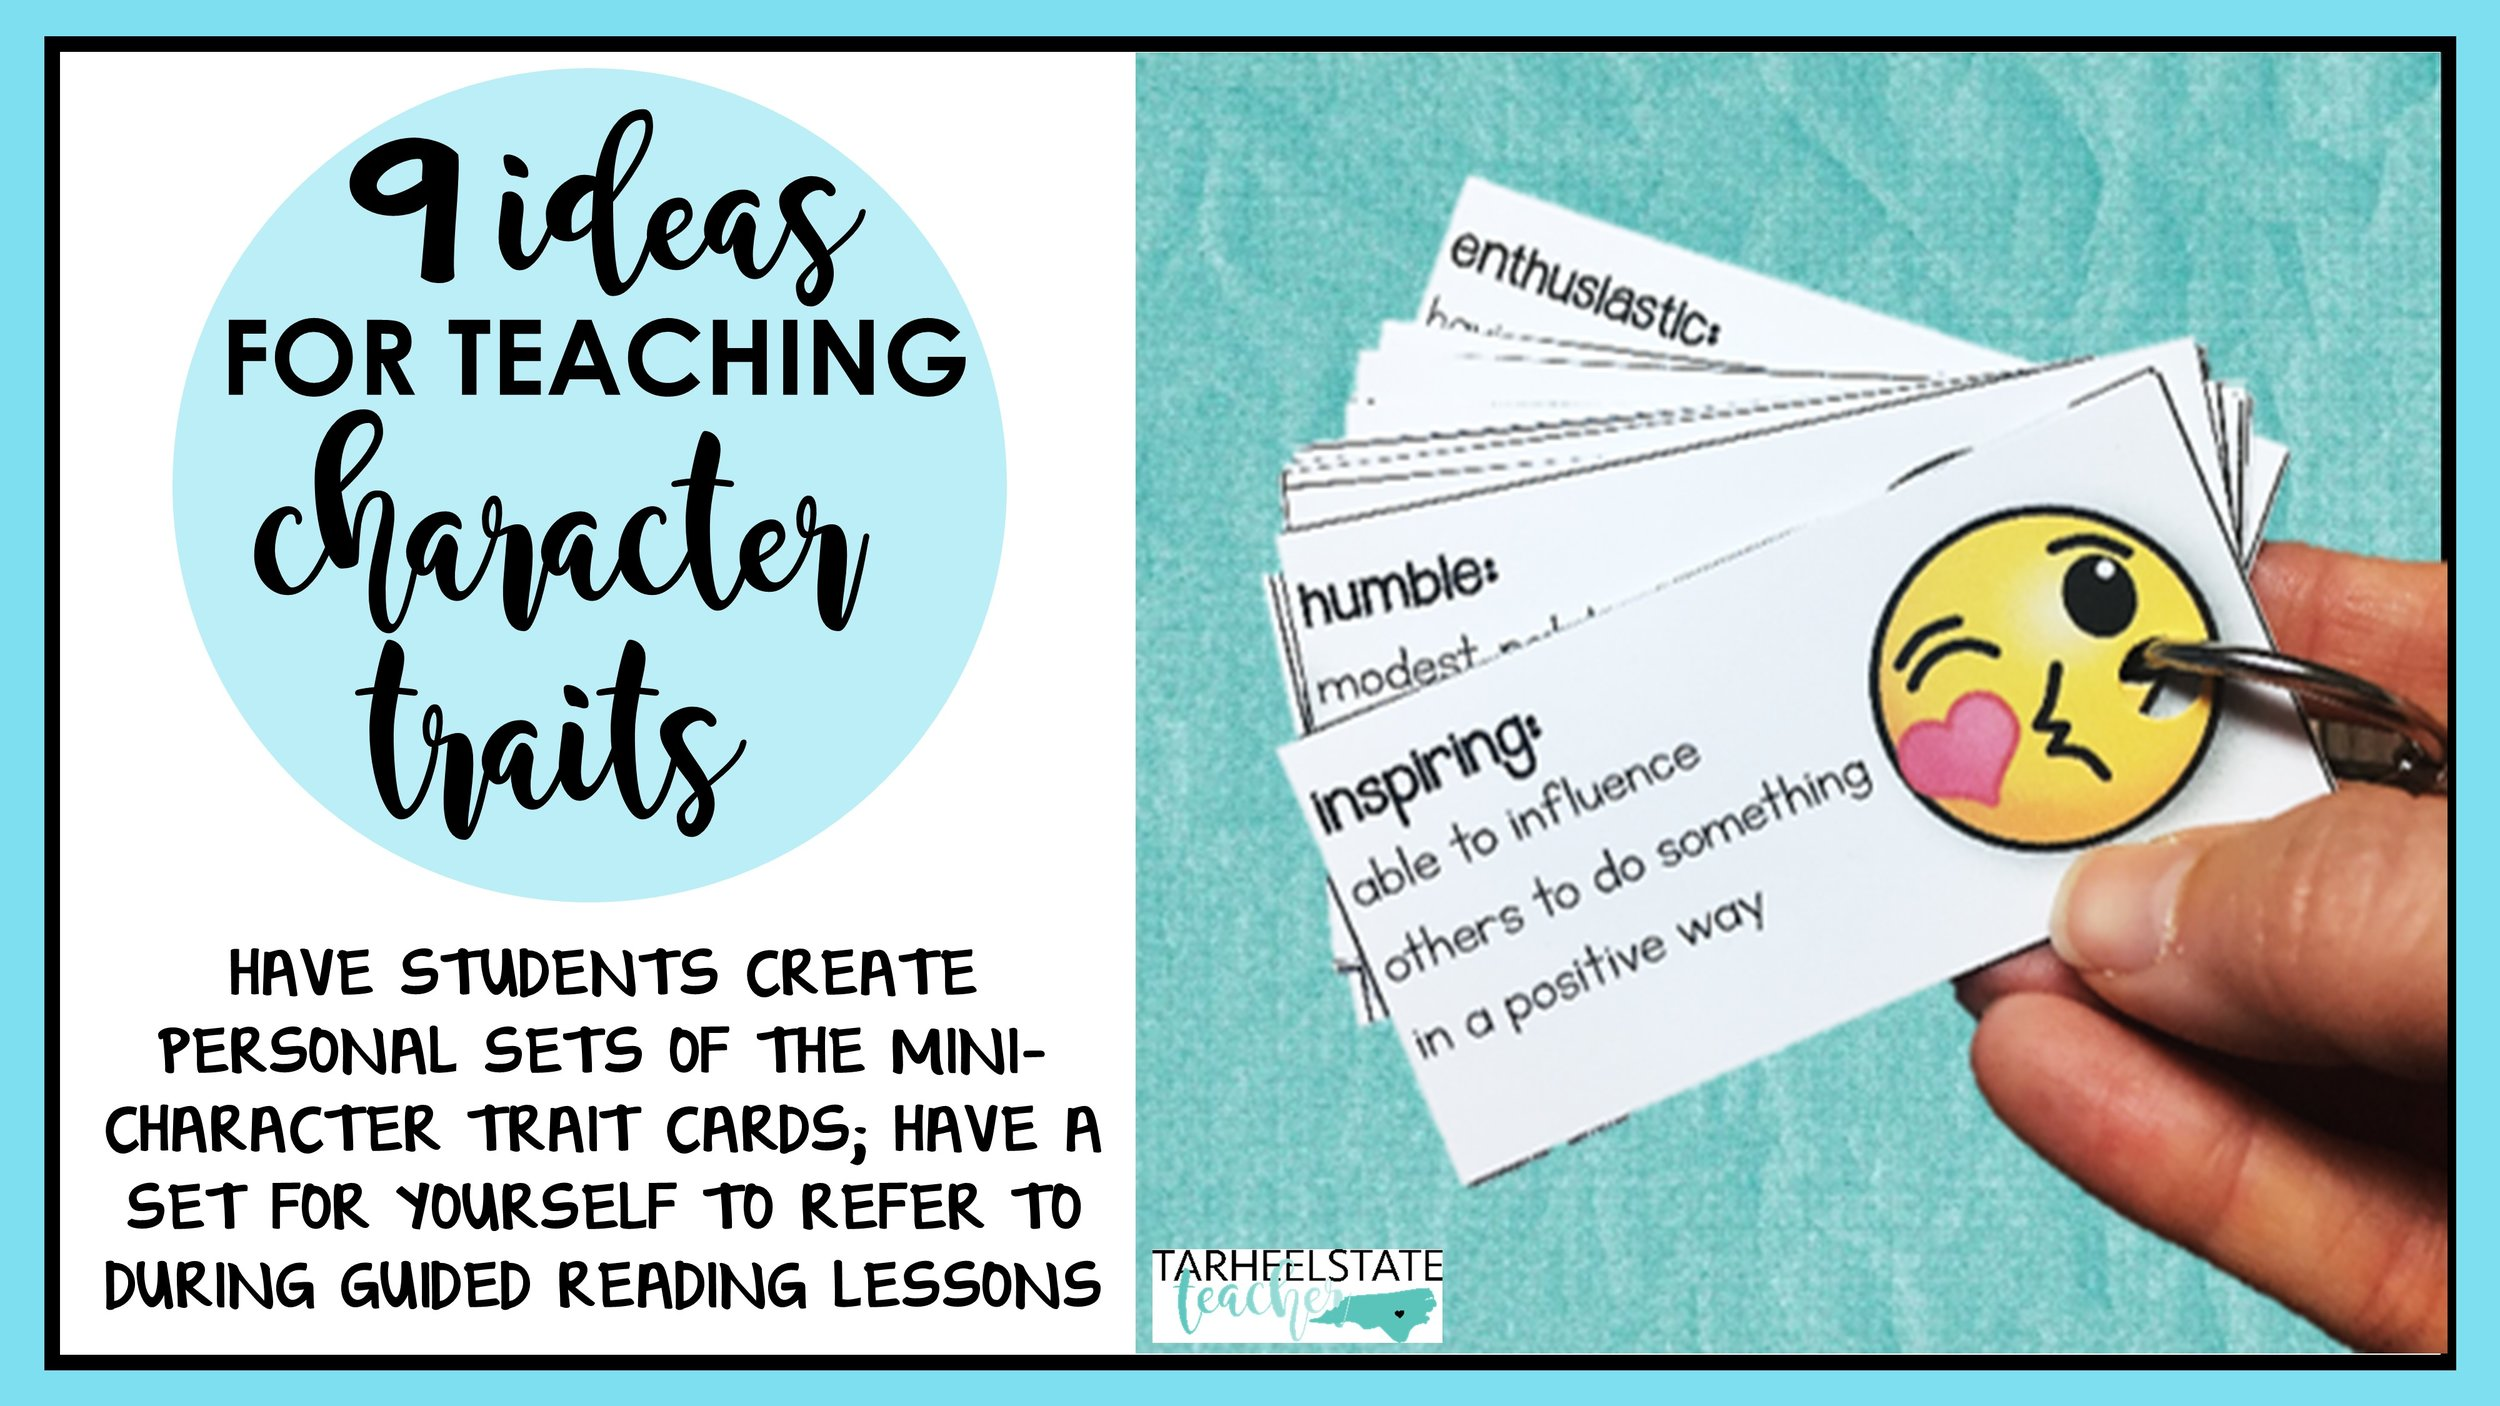 character traits for guided reading.JPG